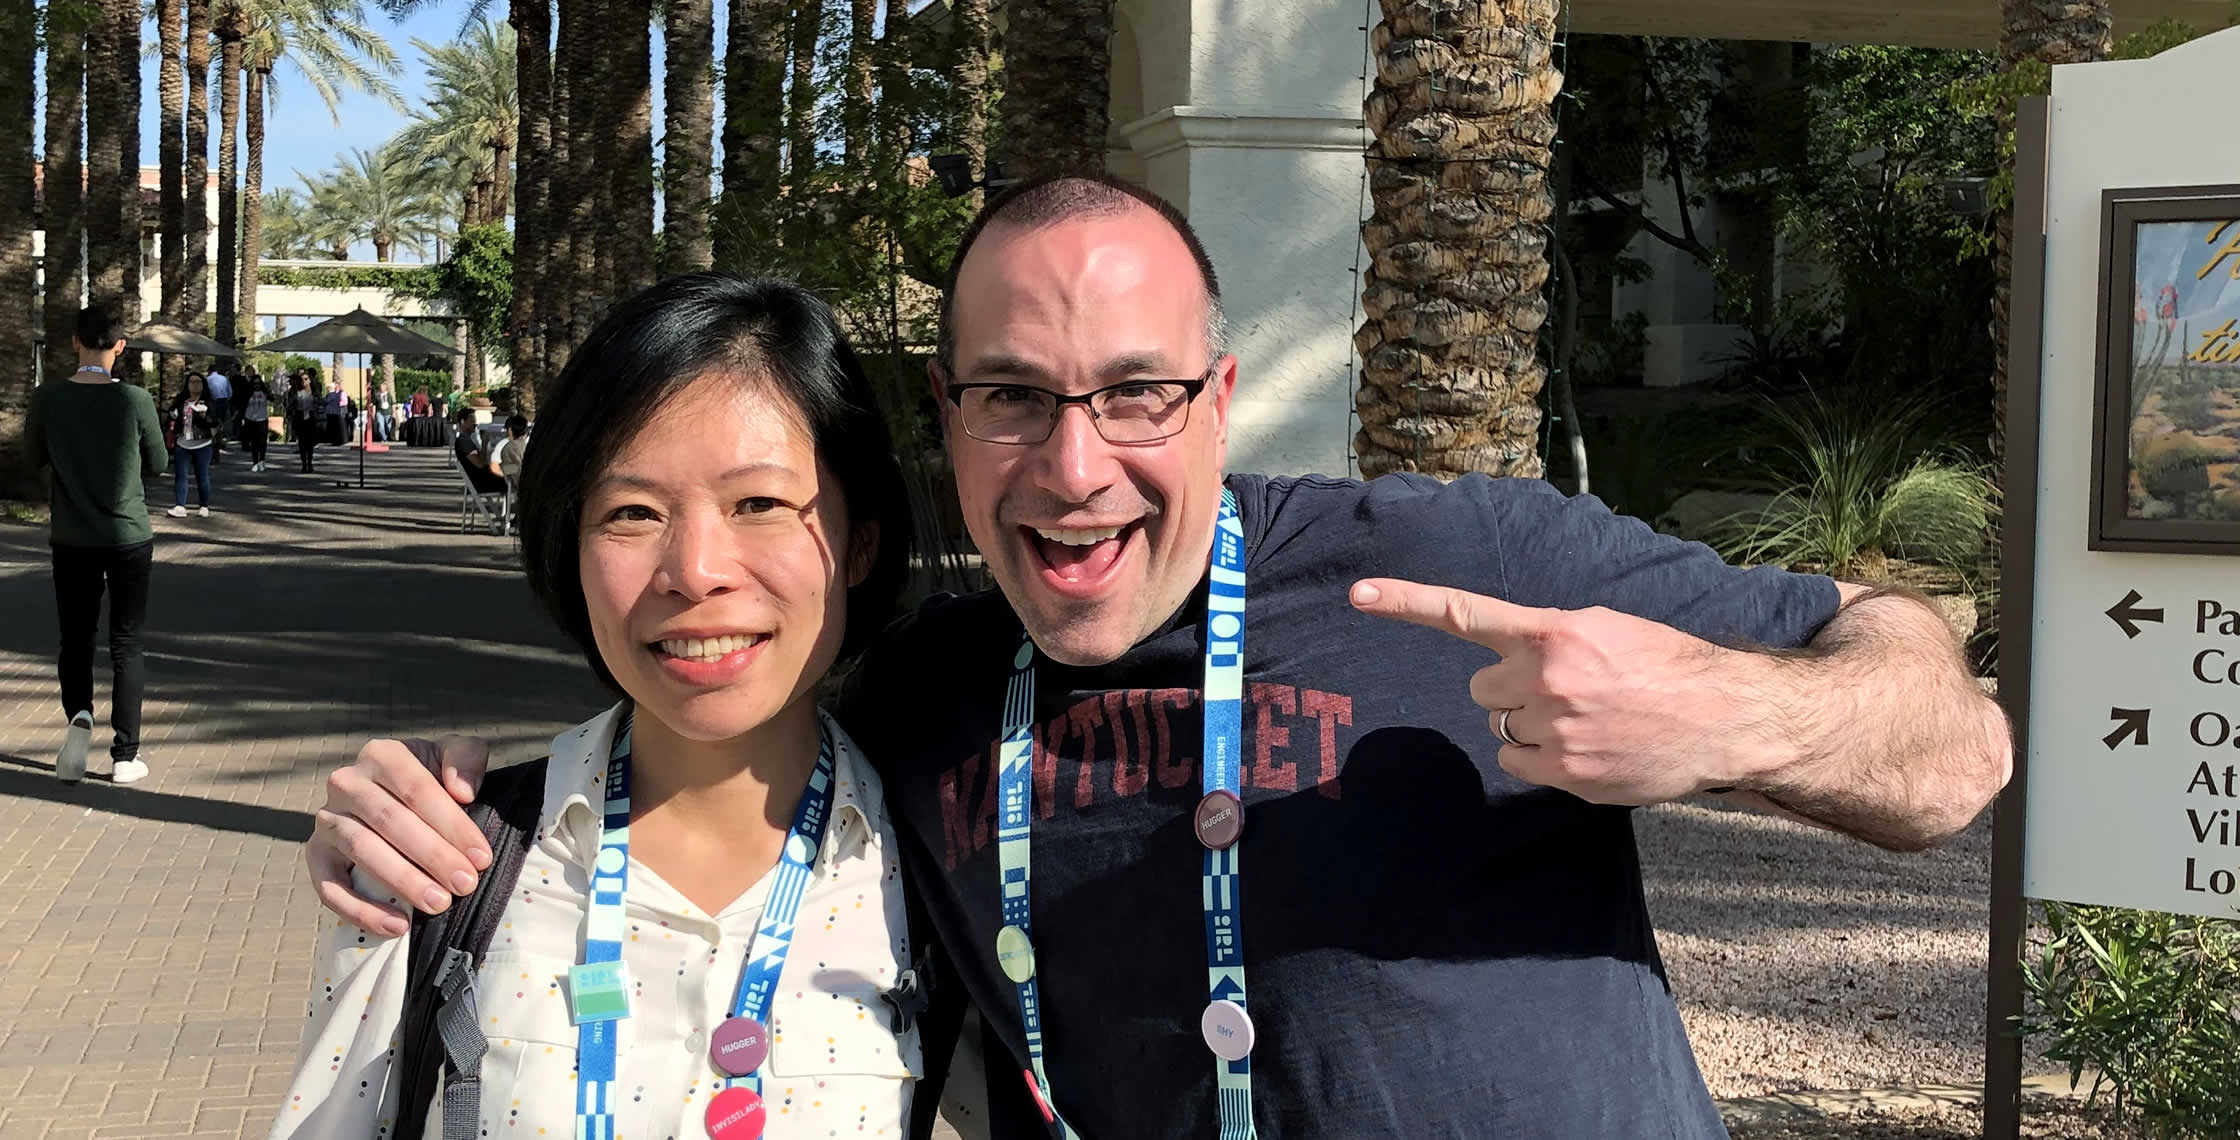 Ben Nadel at InVision In Real Life (IRL) 2019 (Phoenix, AZ) with: Edith Au